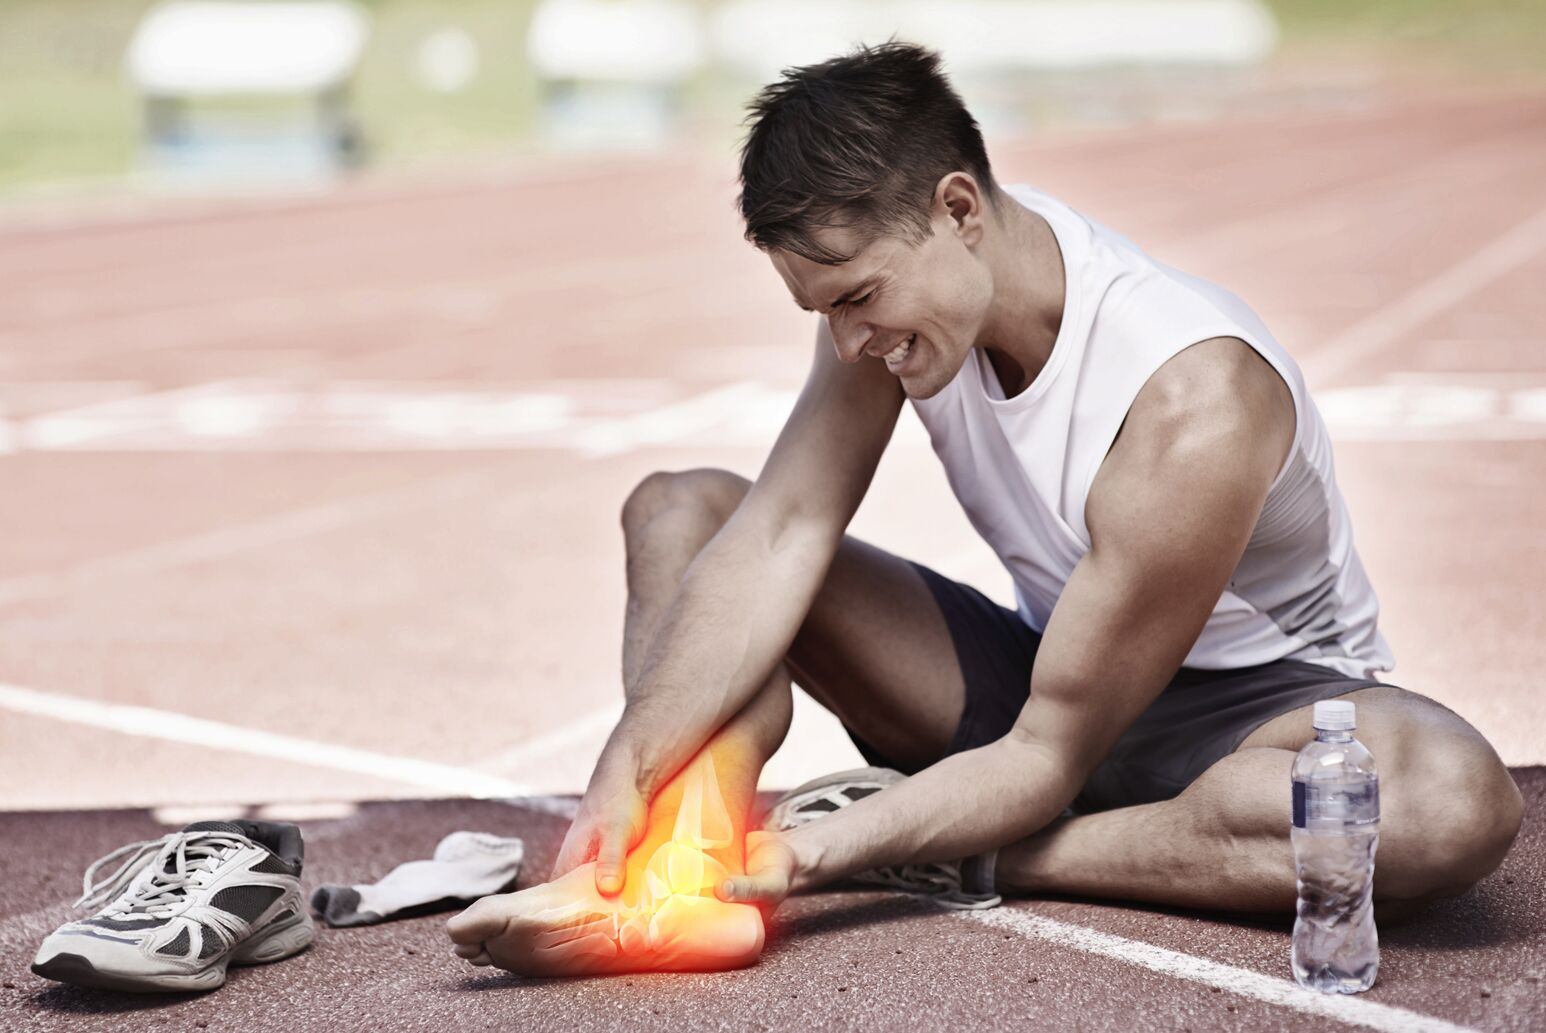 A runner holds his ankle after an injury.